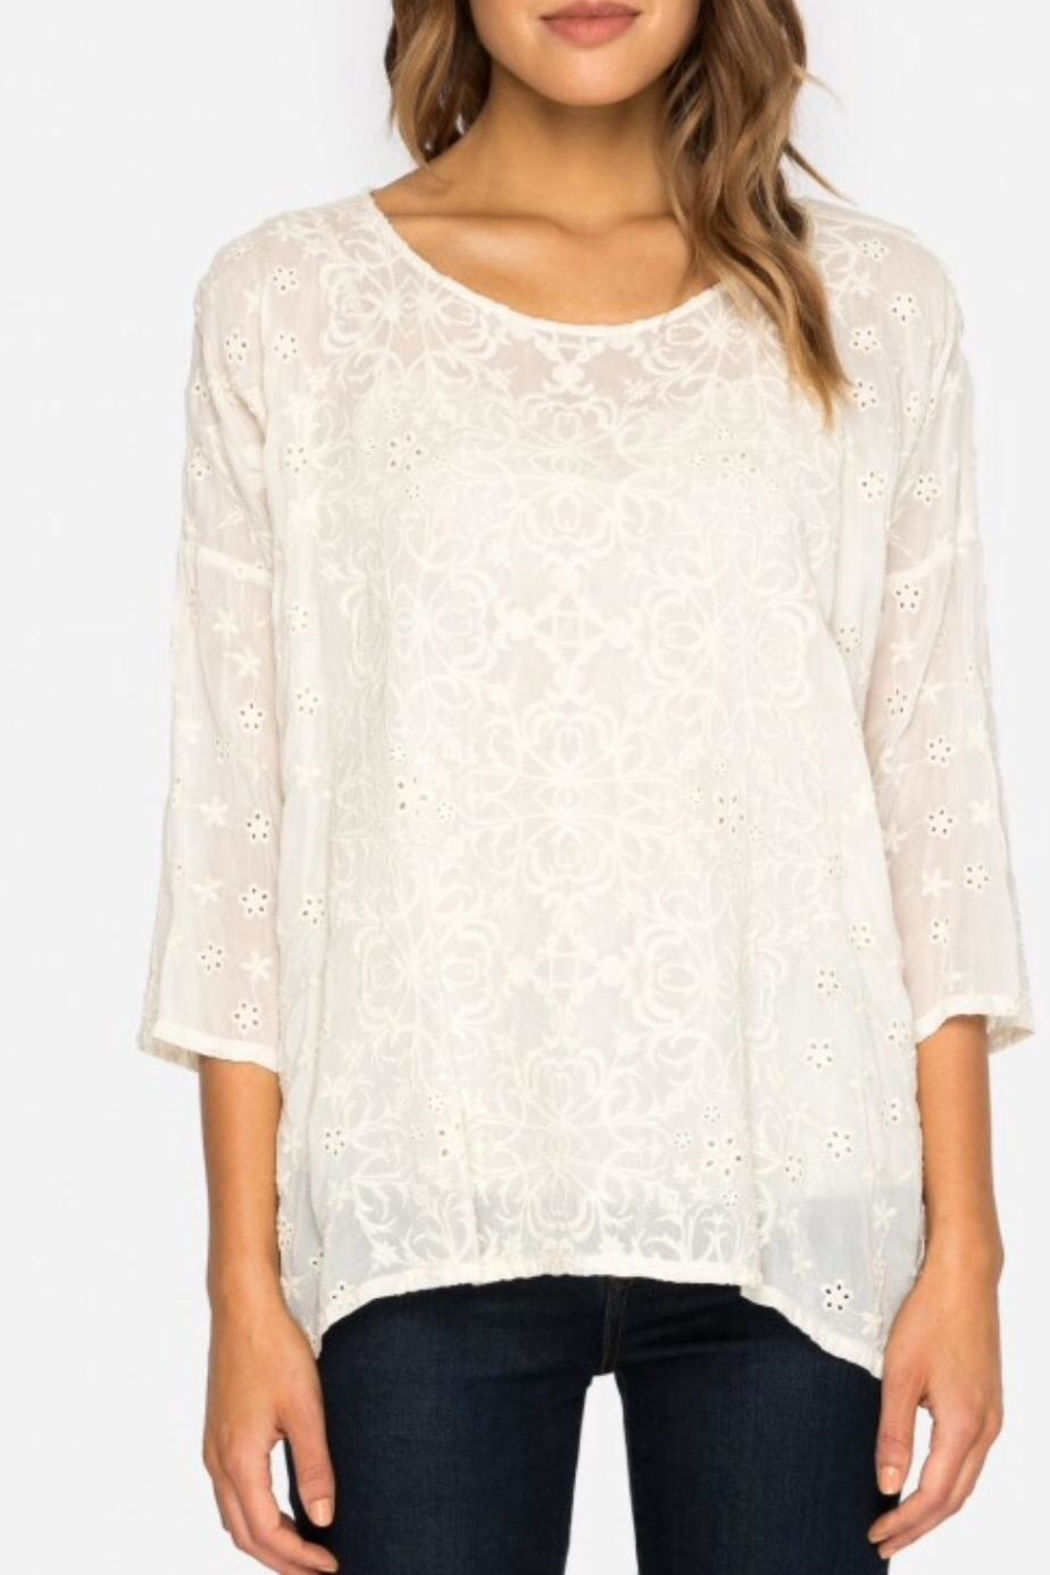 Johnny Was Jossy Embroiderd Blouse - Front Full Image